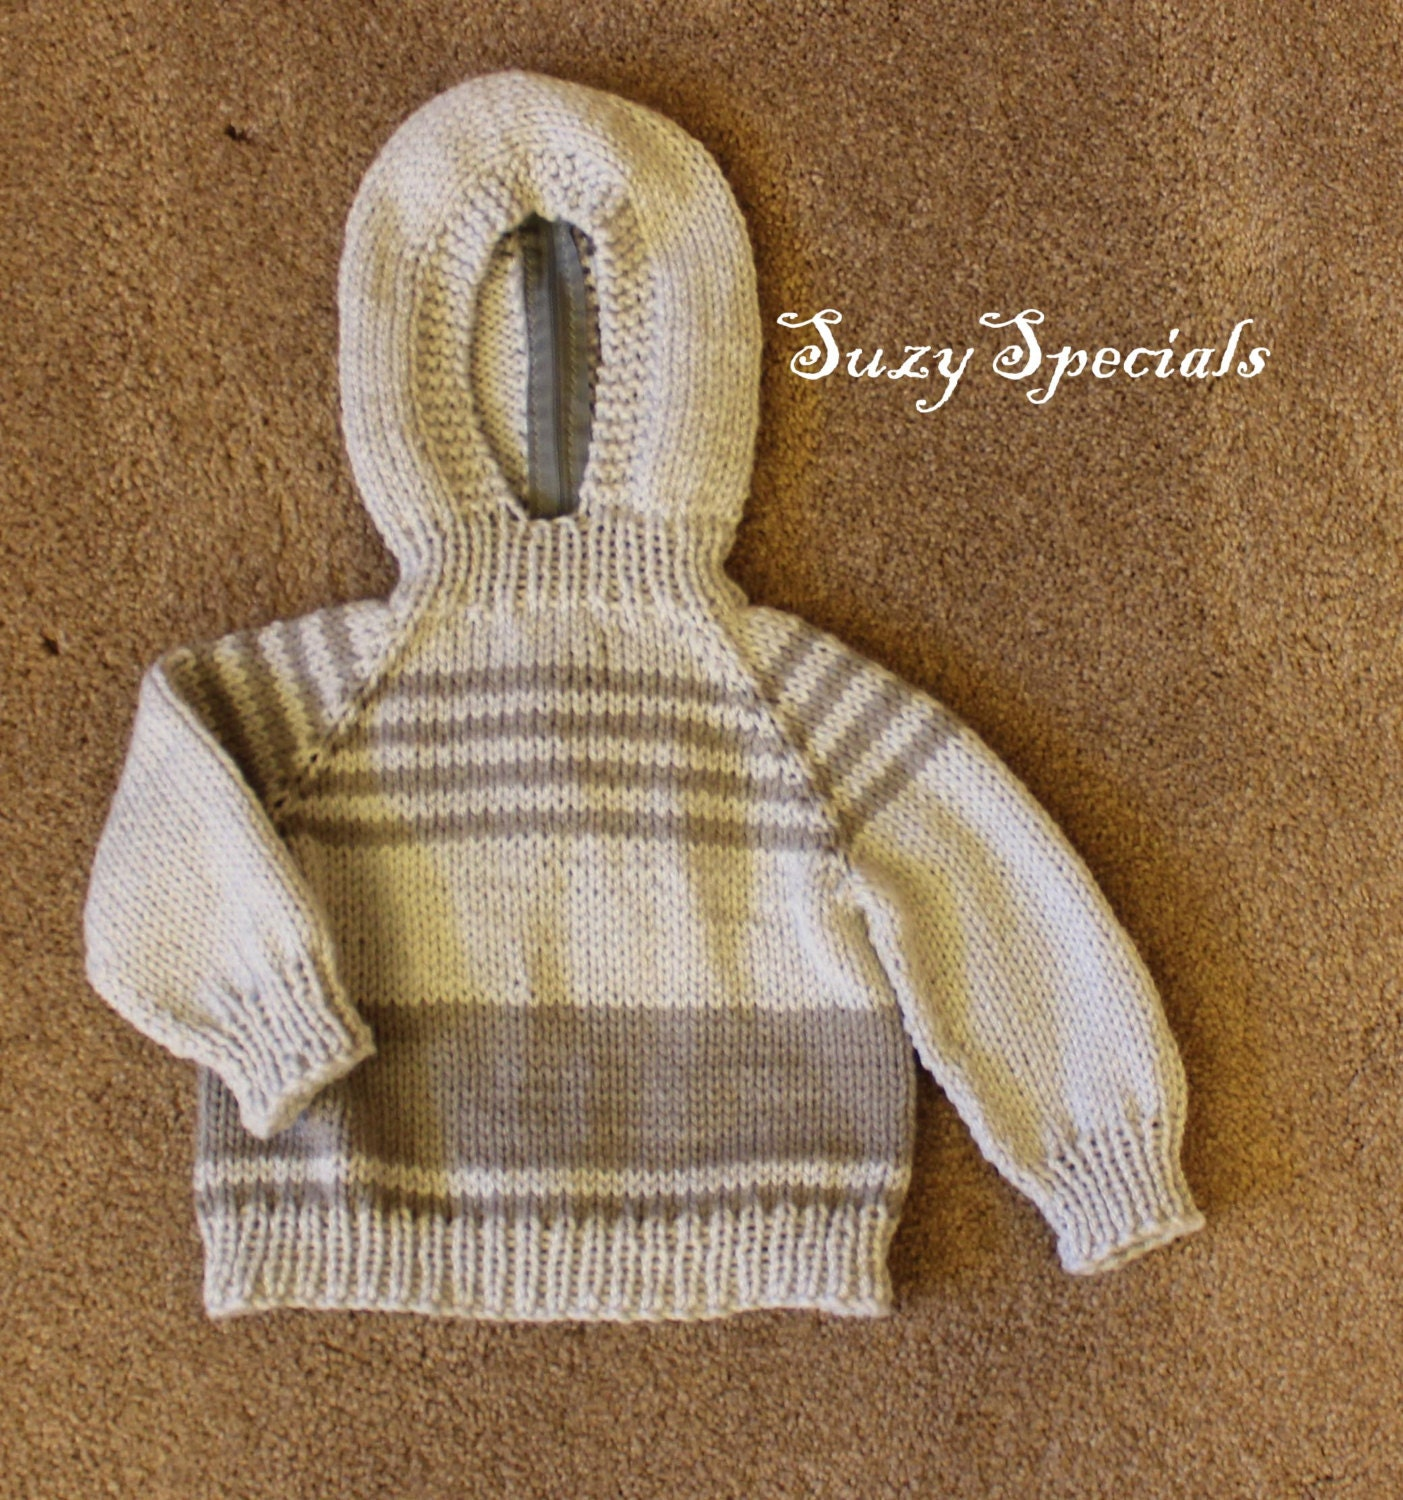 Knitting Pattern For Baby Sweater With Zipper In The Back : Knitted Hooded Baby Sweater with Back zipper Soft by SuzySpecials